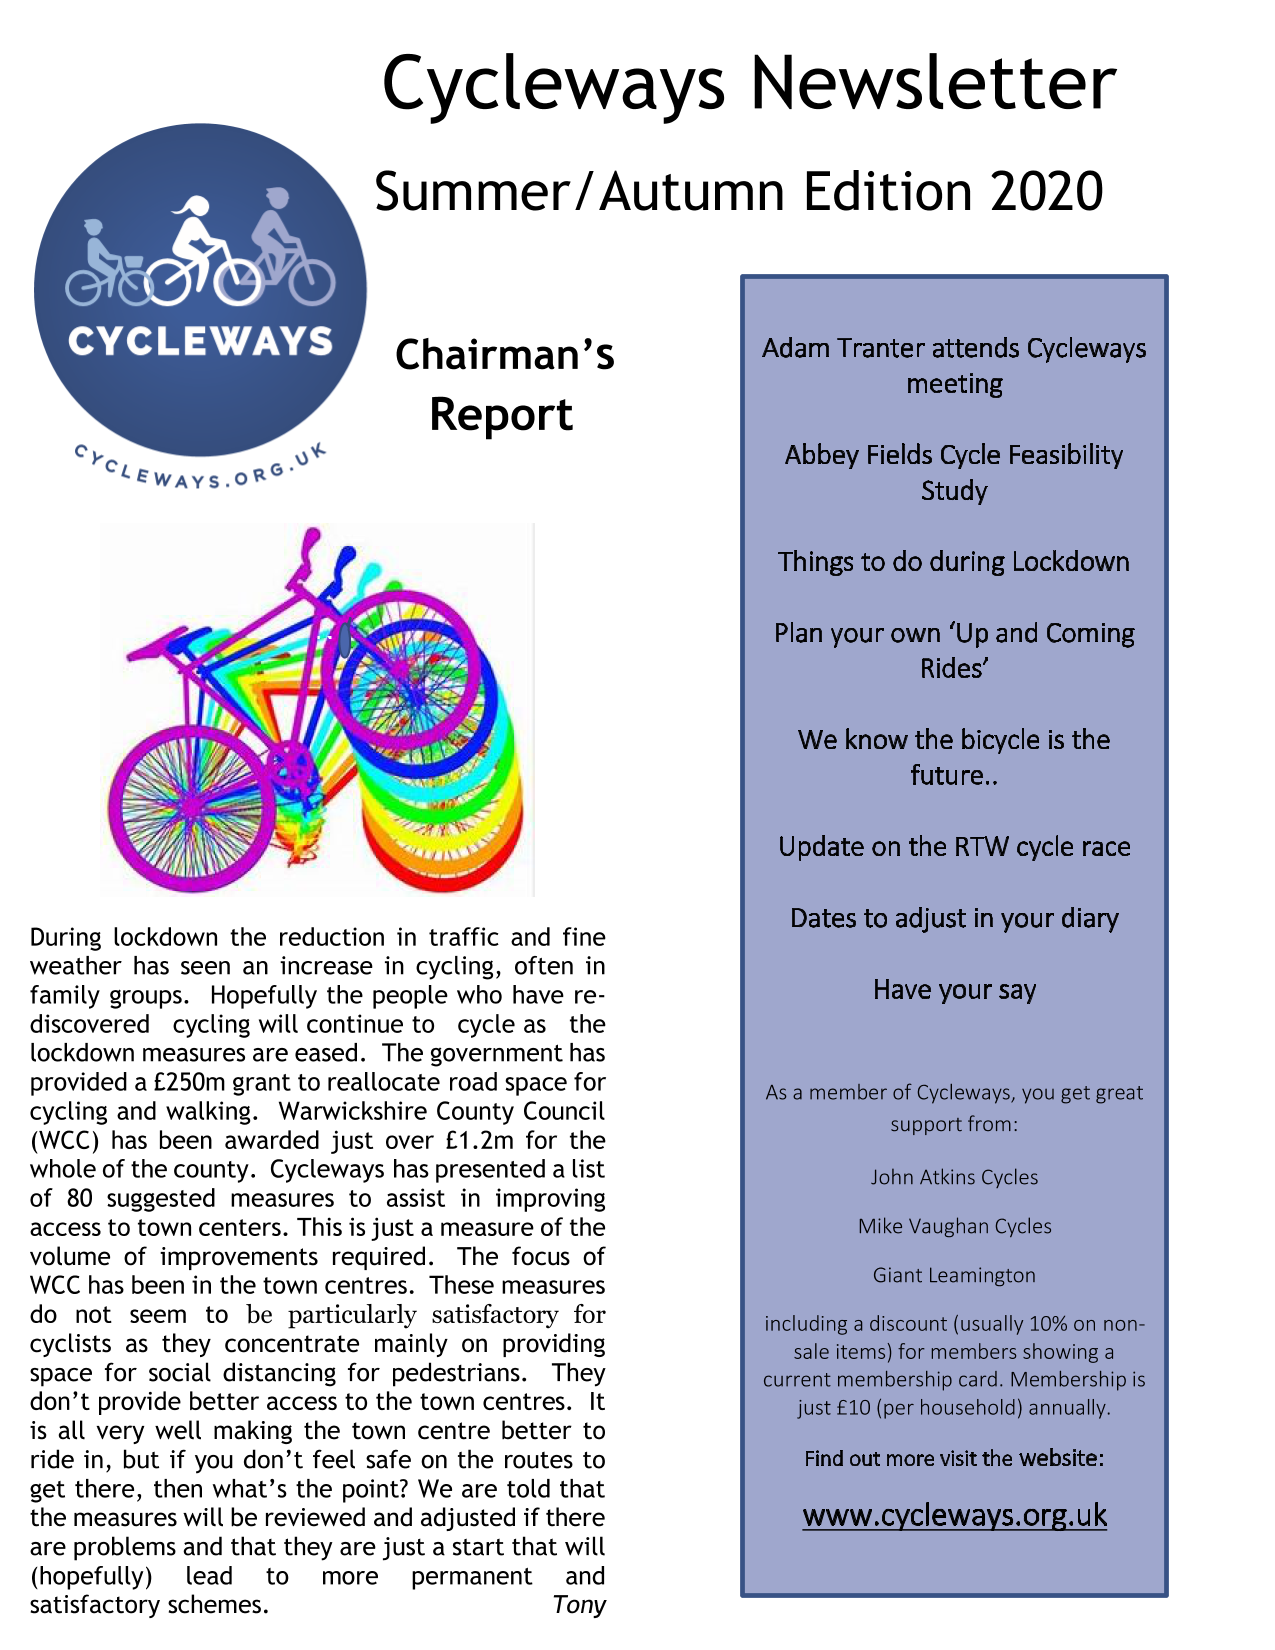 Cycleways -Newsletter Summer Autumn 2020 v 1.1_page1